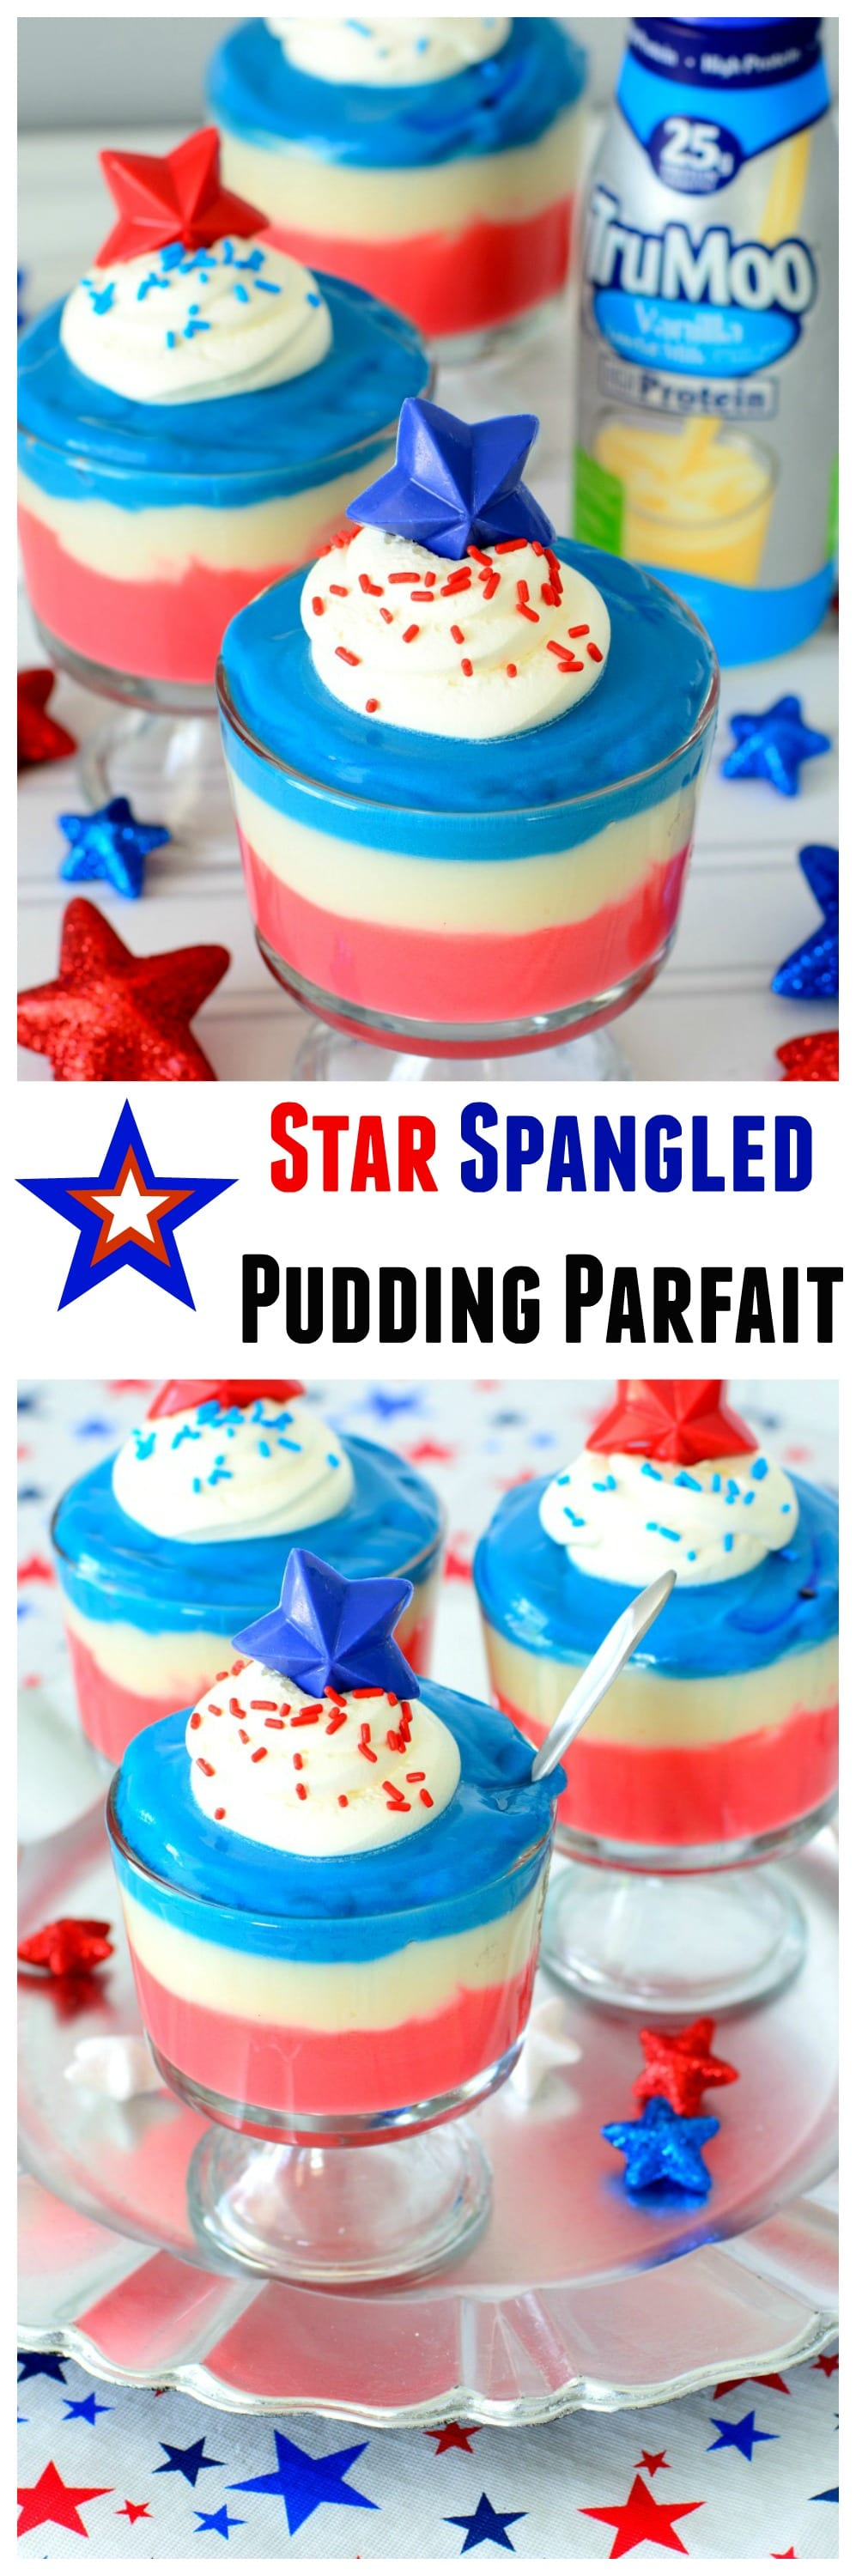 Star Spangled Pudding Parfaits- 4th of July Treat, perfect to celebrate all summer long with this red, white, and blue stunning dessert recipe